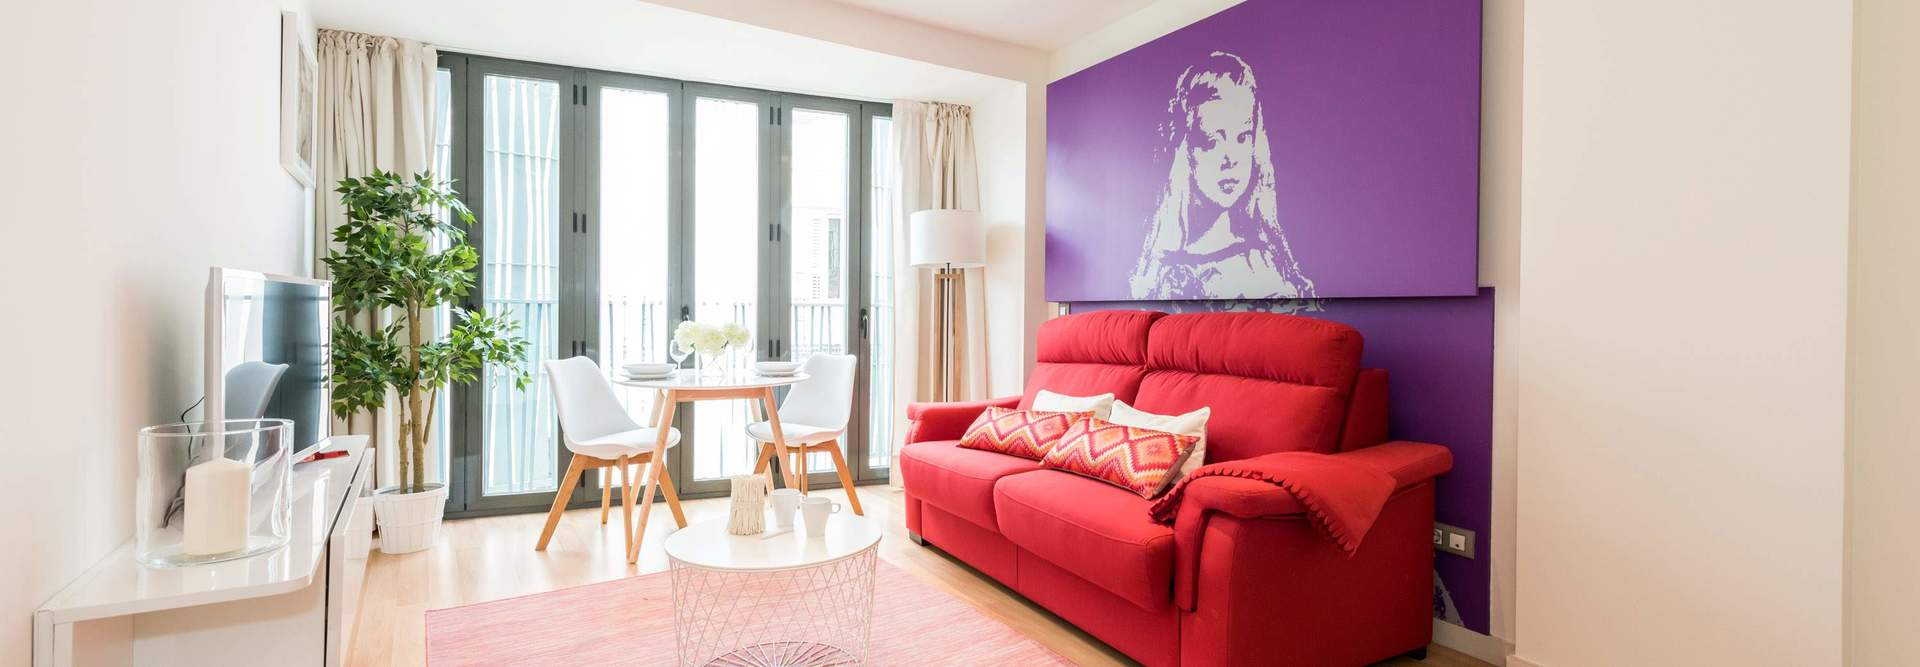 Home alquiler apartamento madrid centro mad4rent  1